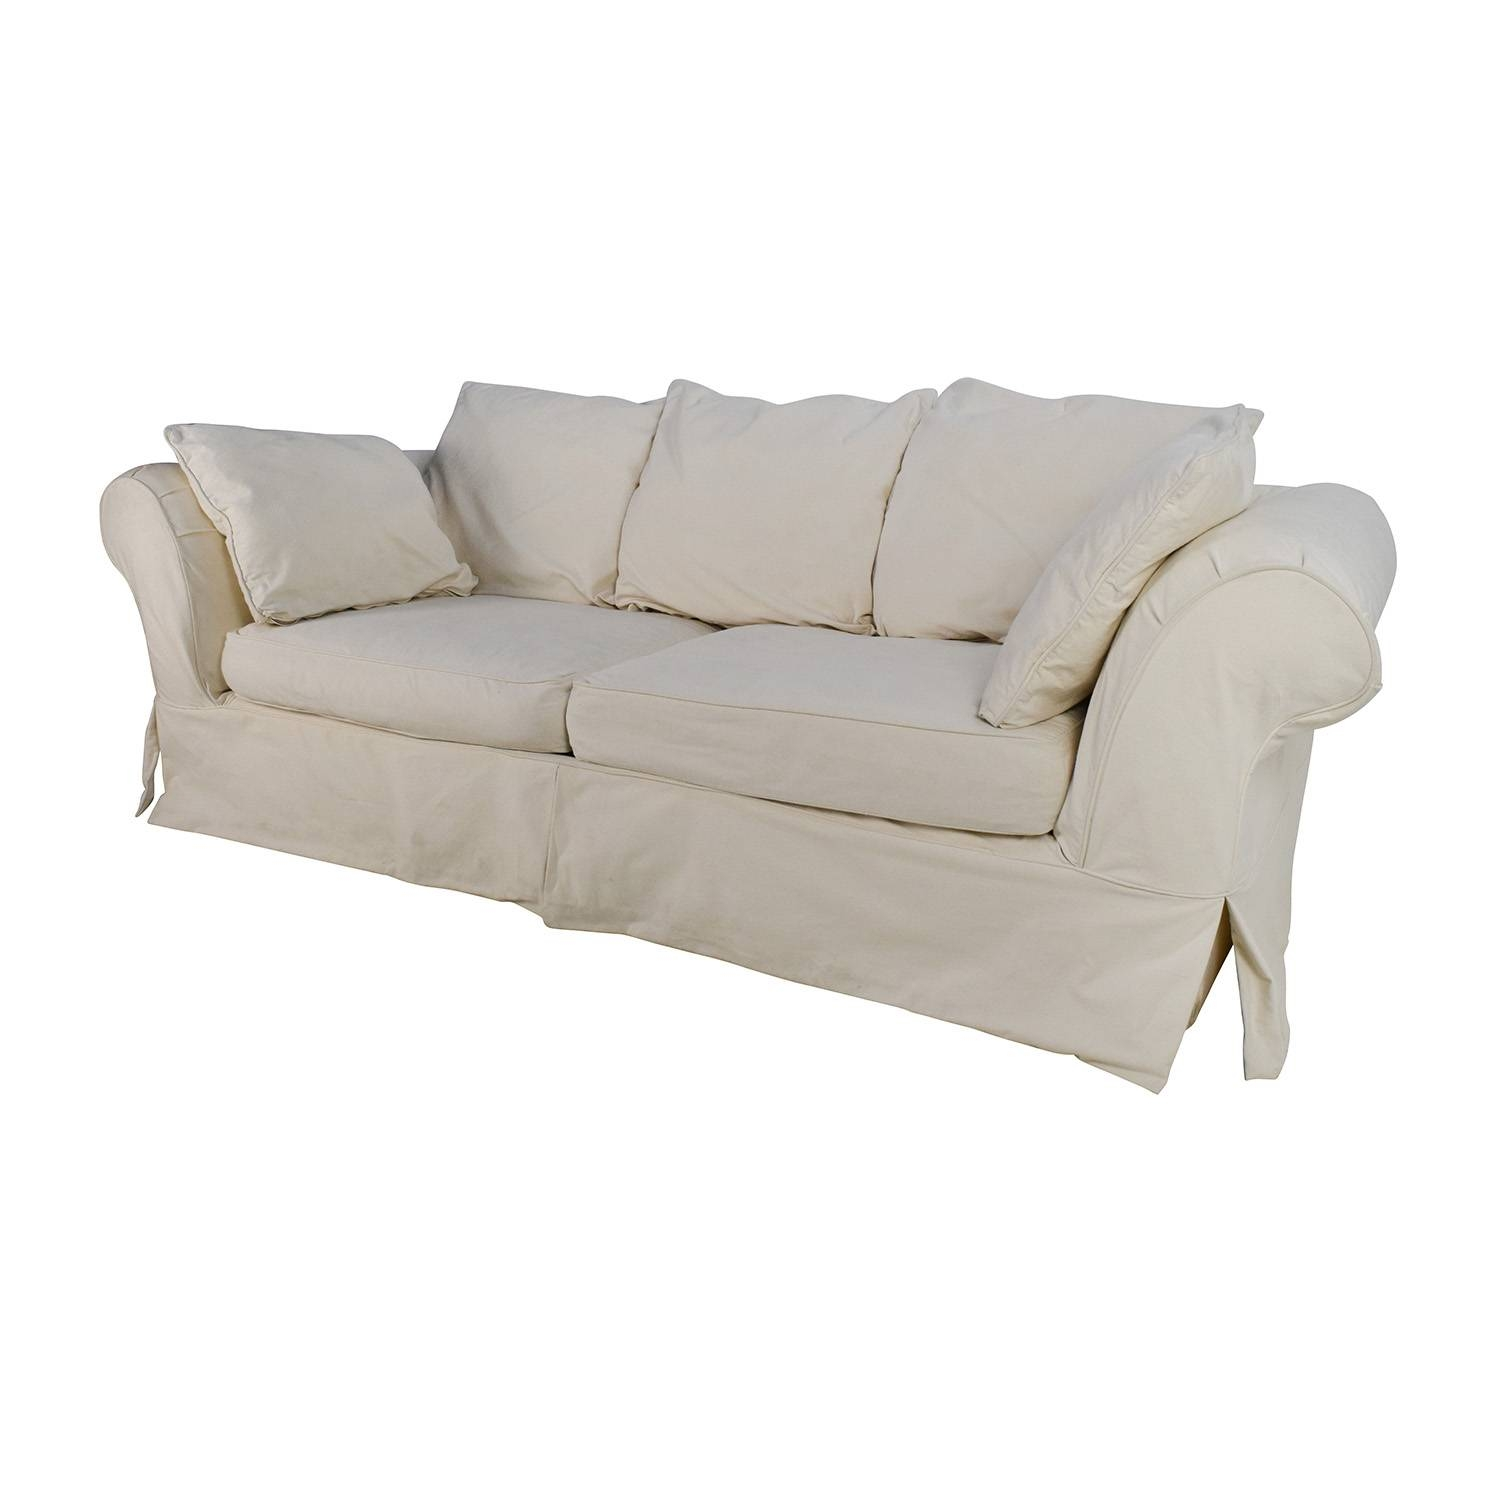 89% Off   Jennifer Convertibles Jennifer Convertibles Linda For Jennifer Sofas (Photo 9 of 30)